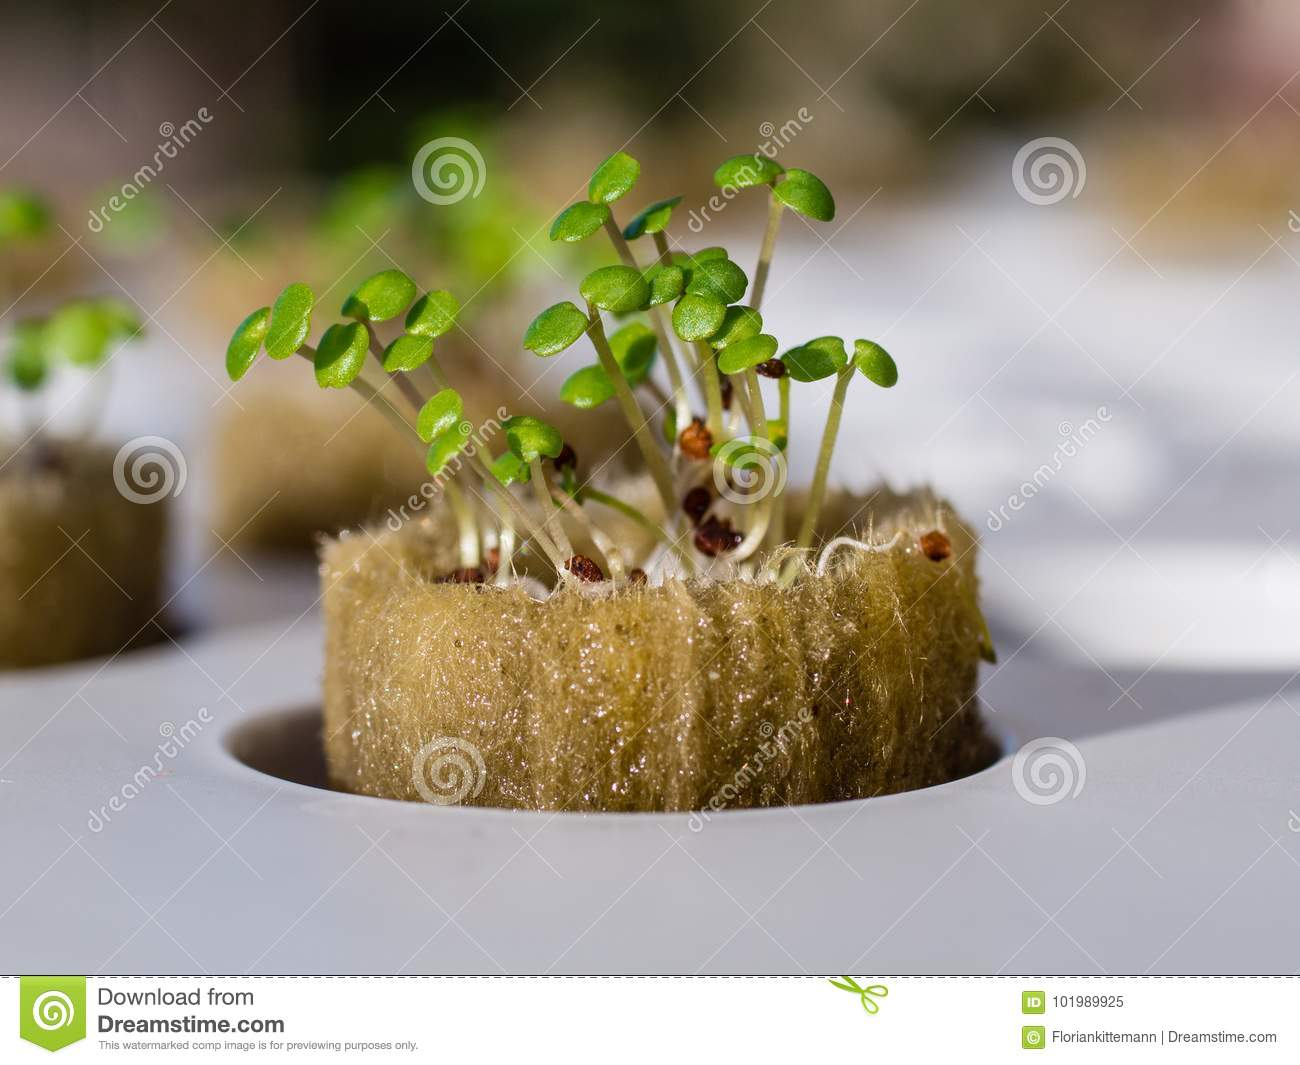 Growing Watercress And Herbs In Hydroponic System Stock Image ...